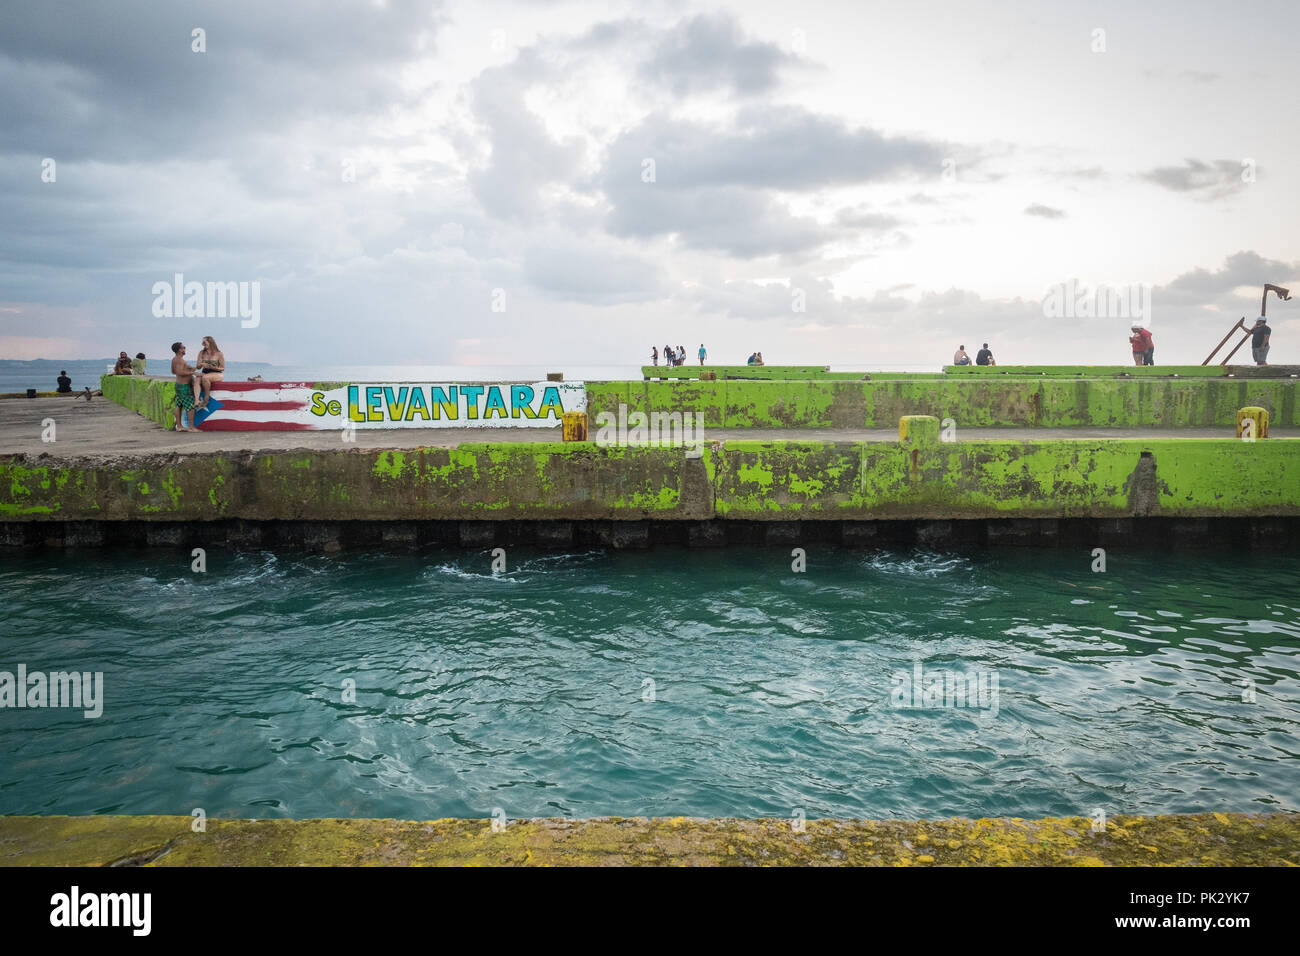 Aguadilla, Puerto Rico. 22, October, 2017. Graffiti on the broken pier of Crash Boat Beach expresses the hopes and determination of residents of Puerto Rico to survive and rebuild their island better than it was before Hurricane Maria destroyed much of its infrastructure in September 2017. Credit: Sara Armas/Alamy Reportage. - Stock Image